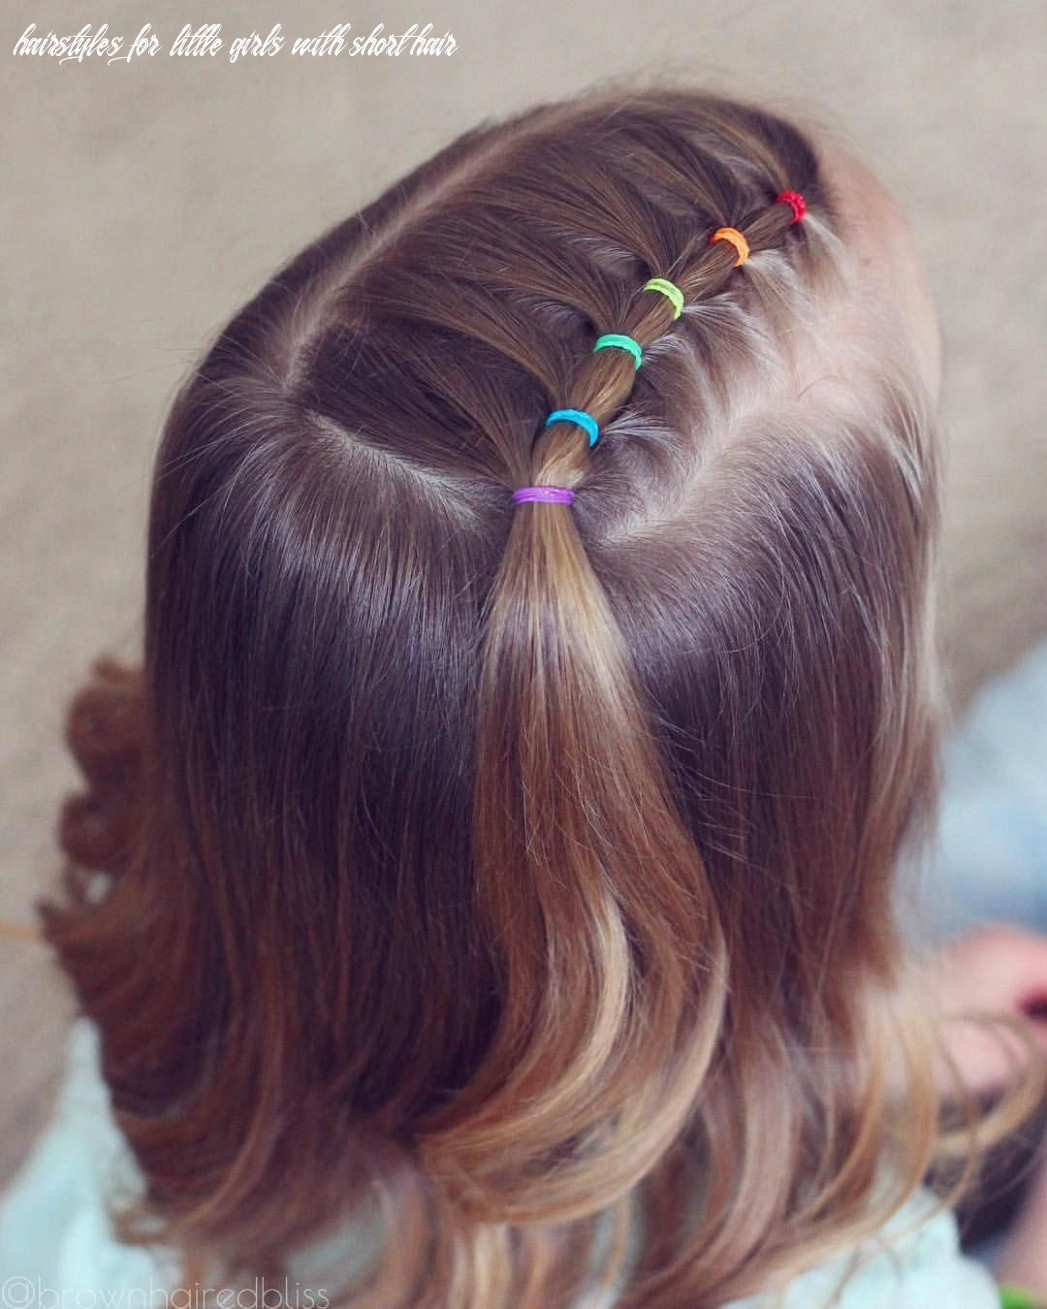 Pin on girls hairstyles easy hairstyles for little girls with short hair